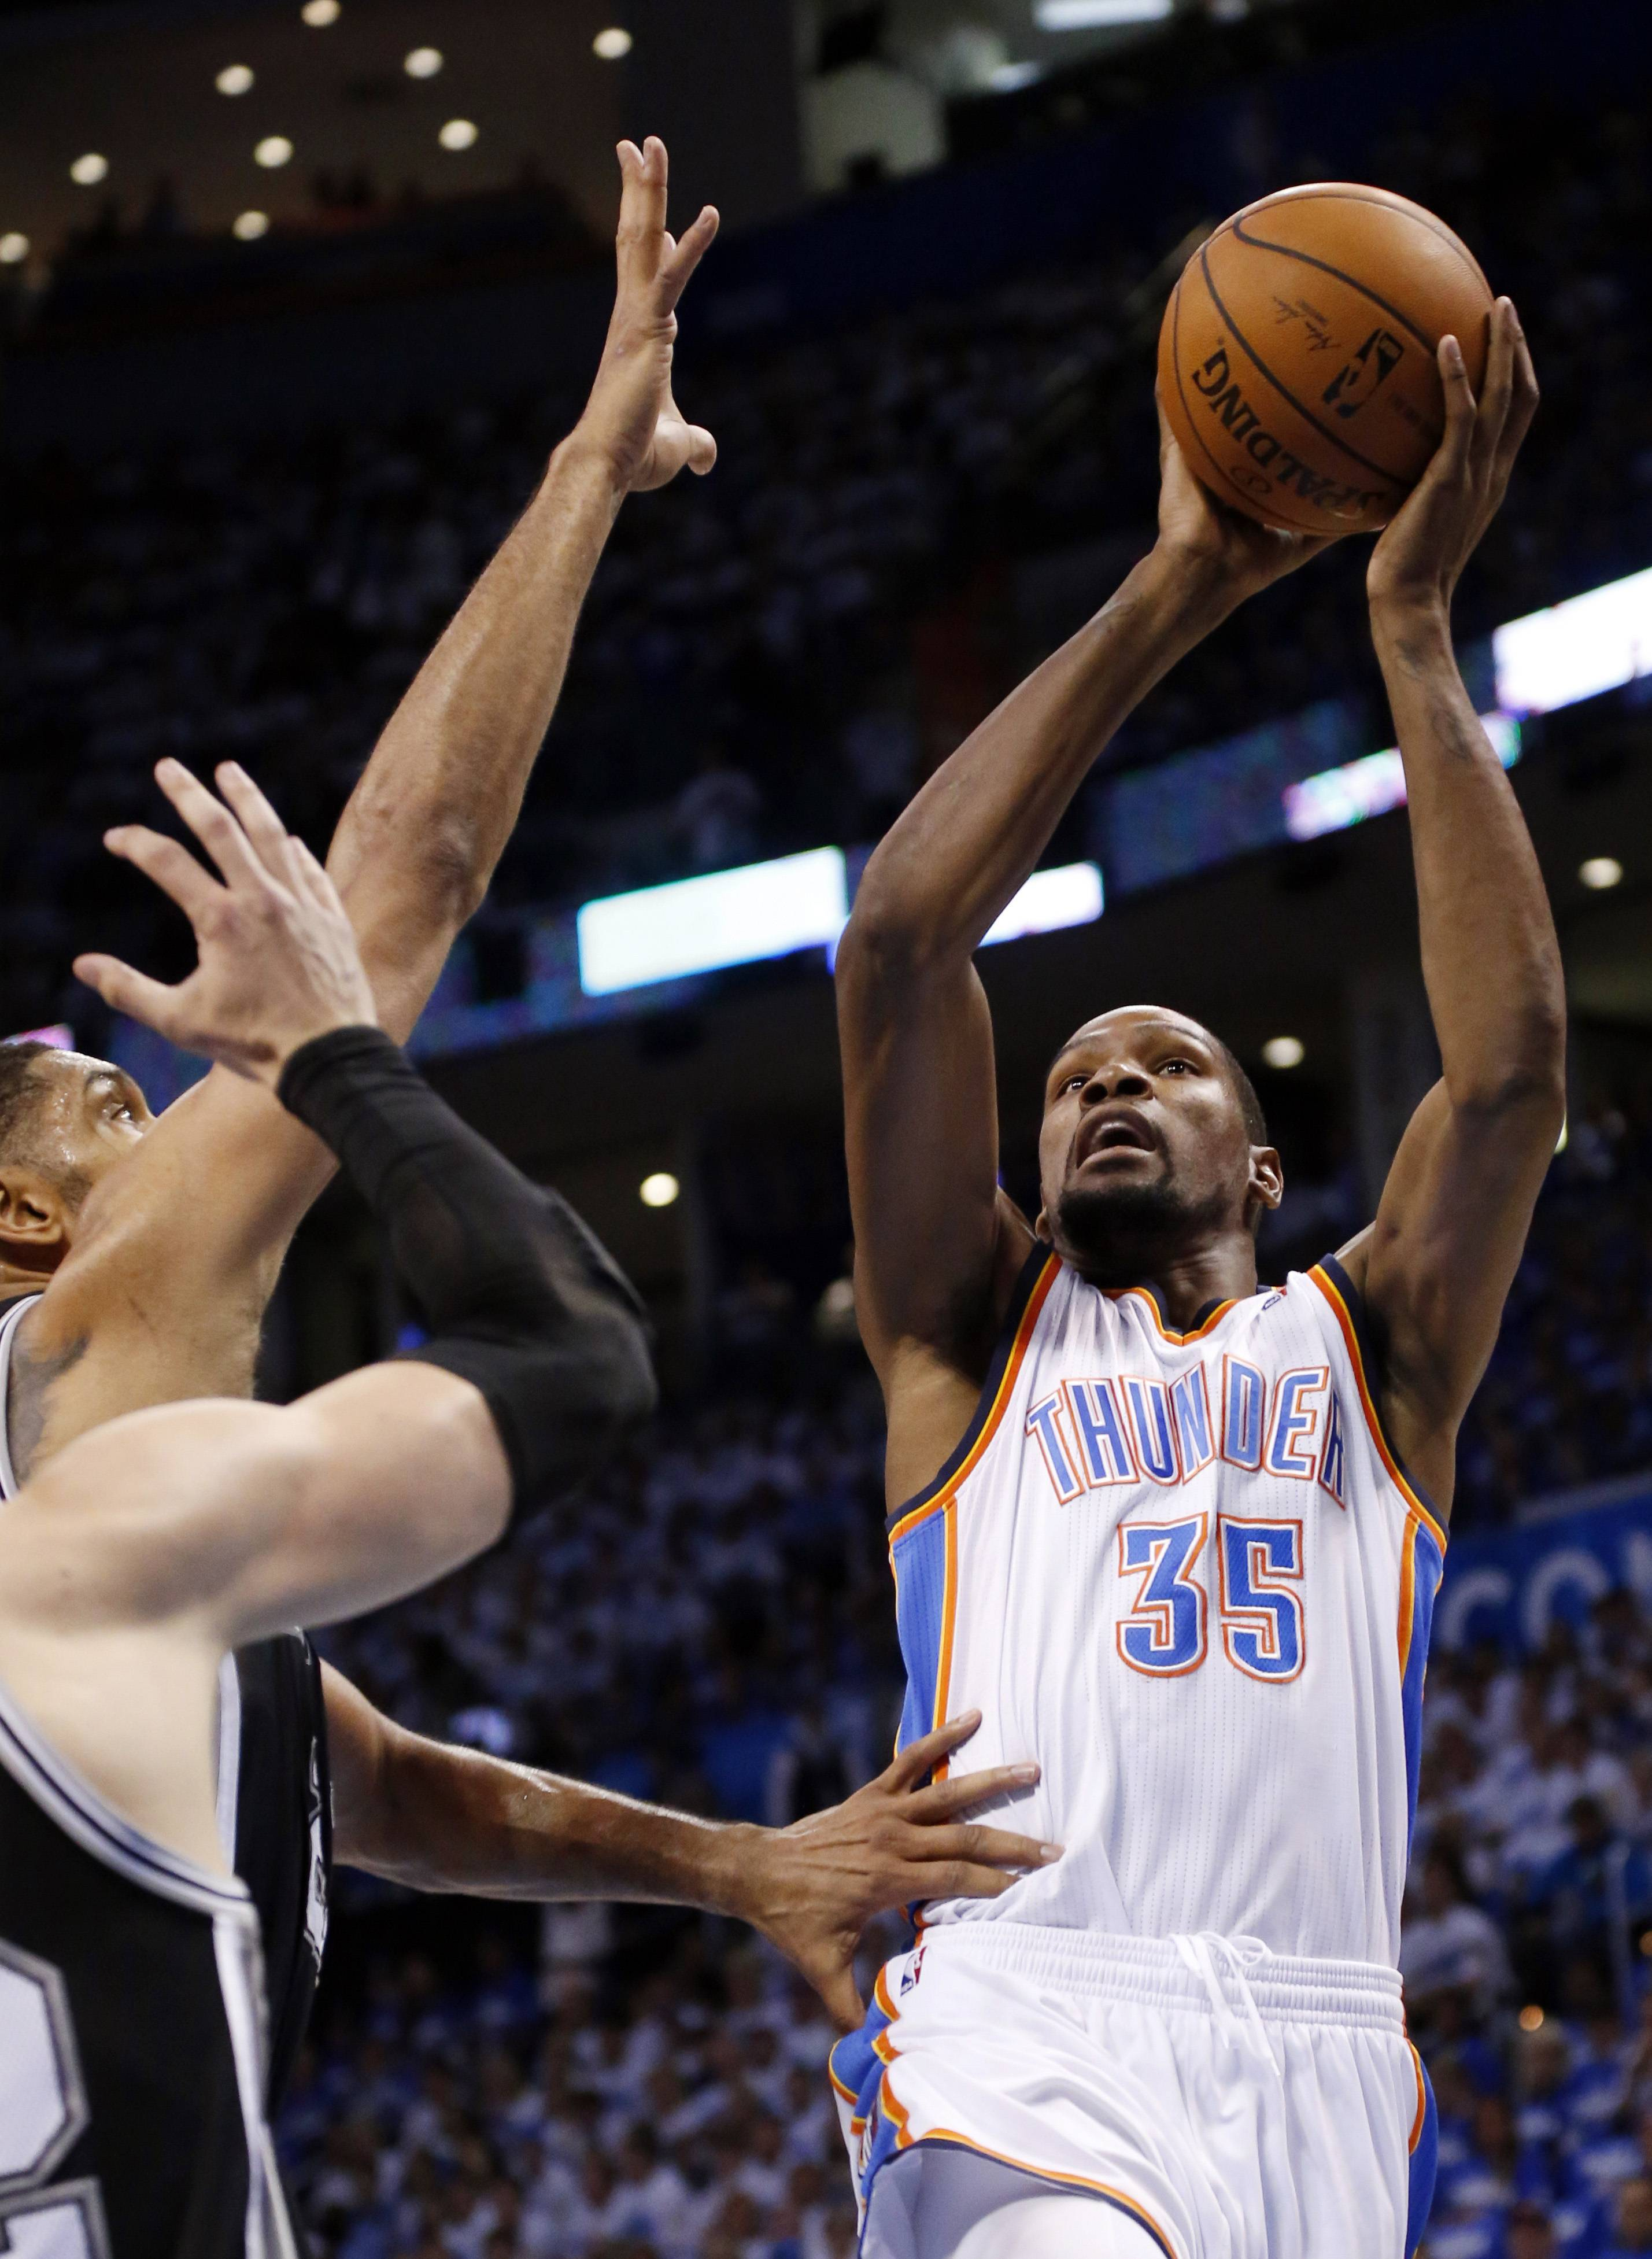 Russell Westbrook had 40 points and 10 assists, and the Oklahoma City Thunder beat the San Antonio Spurs 105-92 on Tuesday night to tie the Western Conference finals at two games apiece.It matched the second-highest playoff point total of Westbrook's career, falling short of the 43 he scored in the 2012 NBA Finals. He also had five rebounds and five steals.